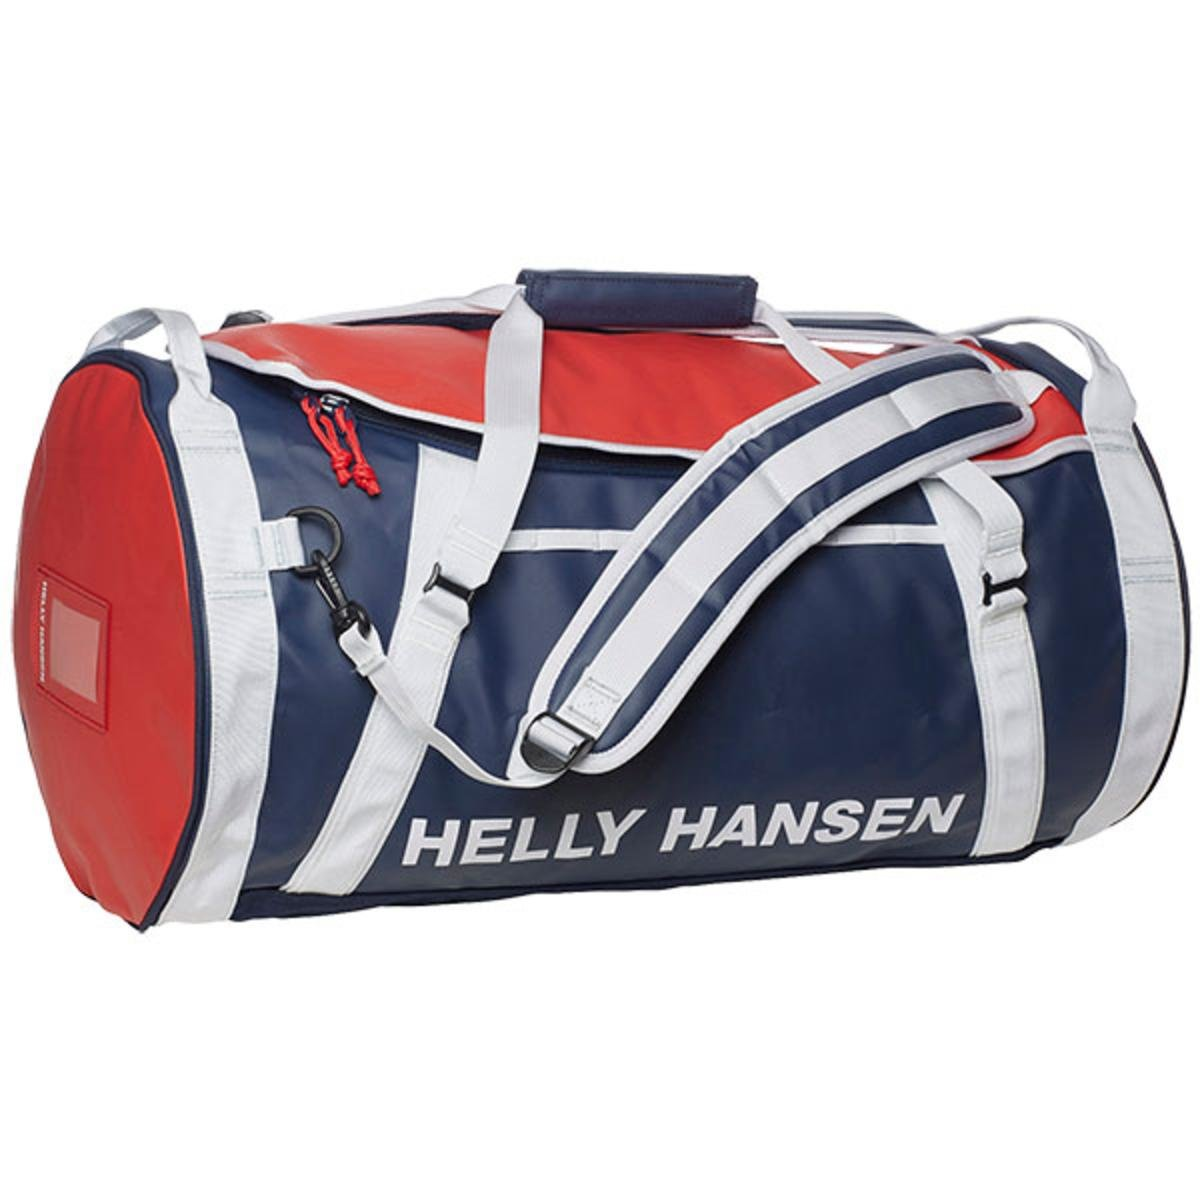 5e497360597 Helly Hansen Duffel Bag 2 30L - The Warming Store